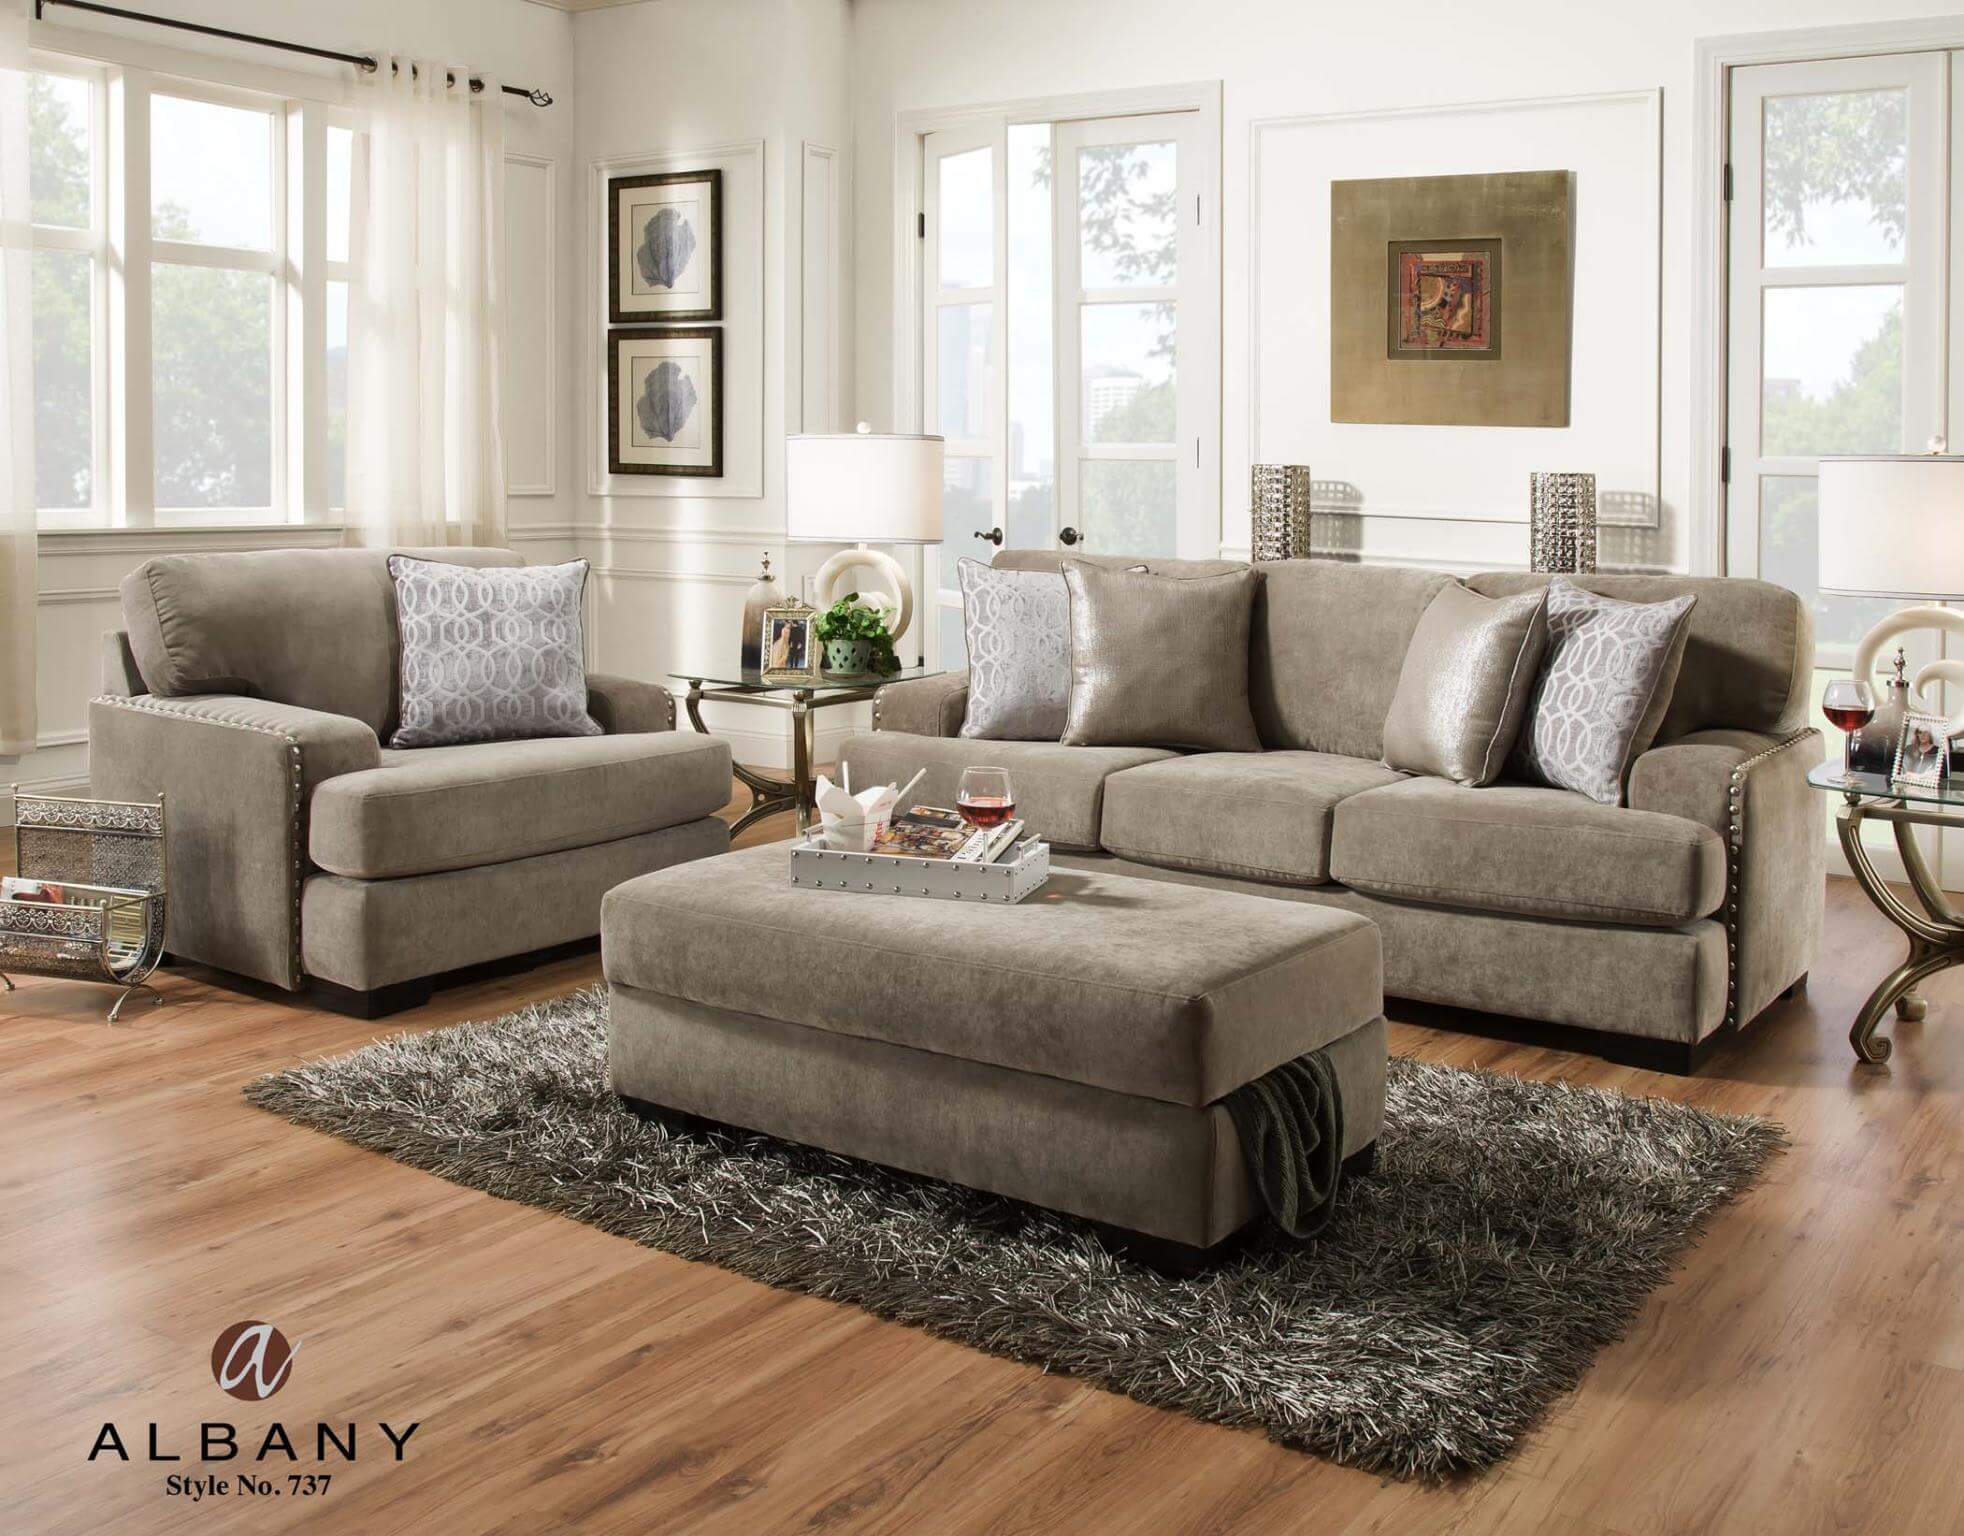 Square Ottoman With Storage